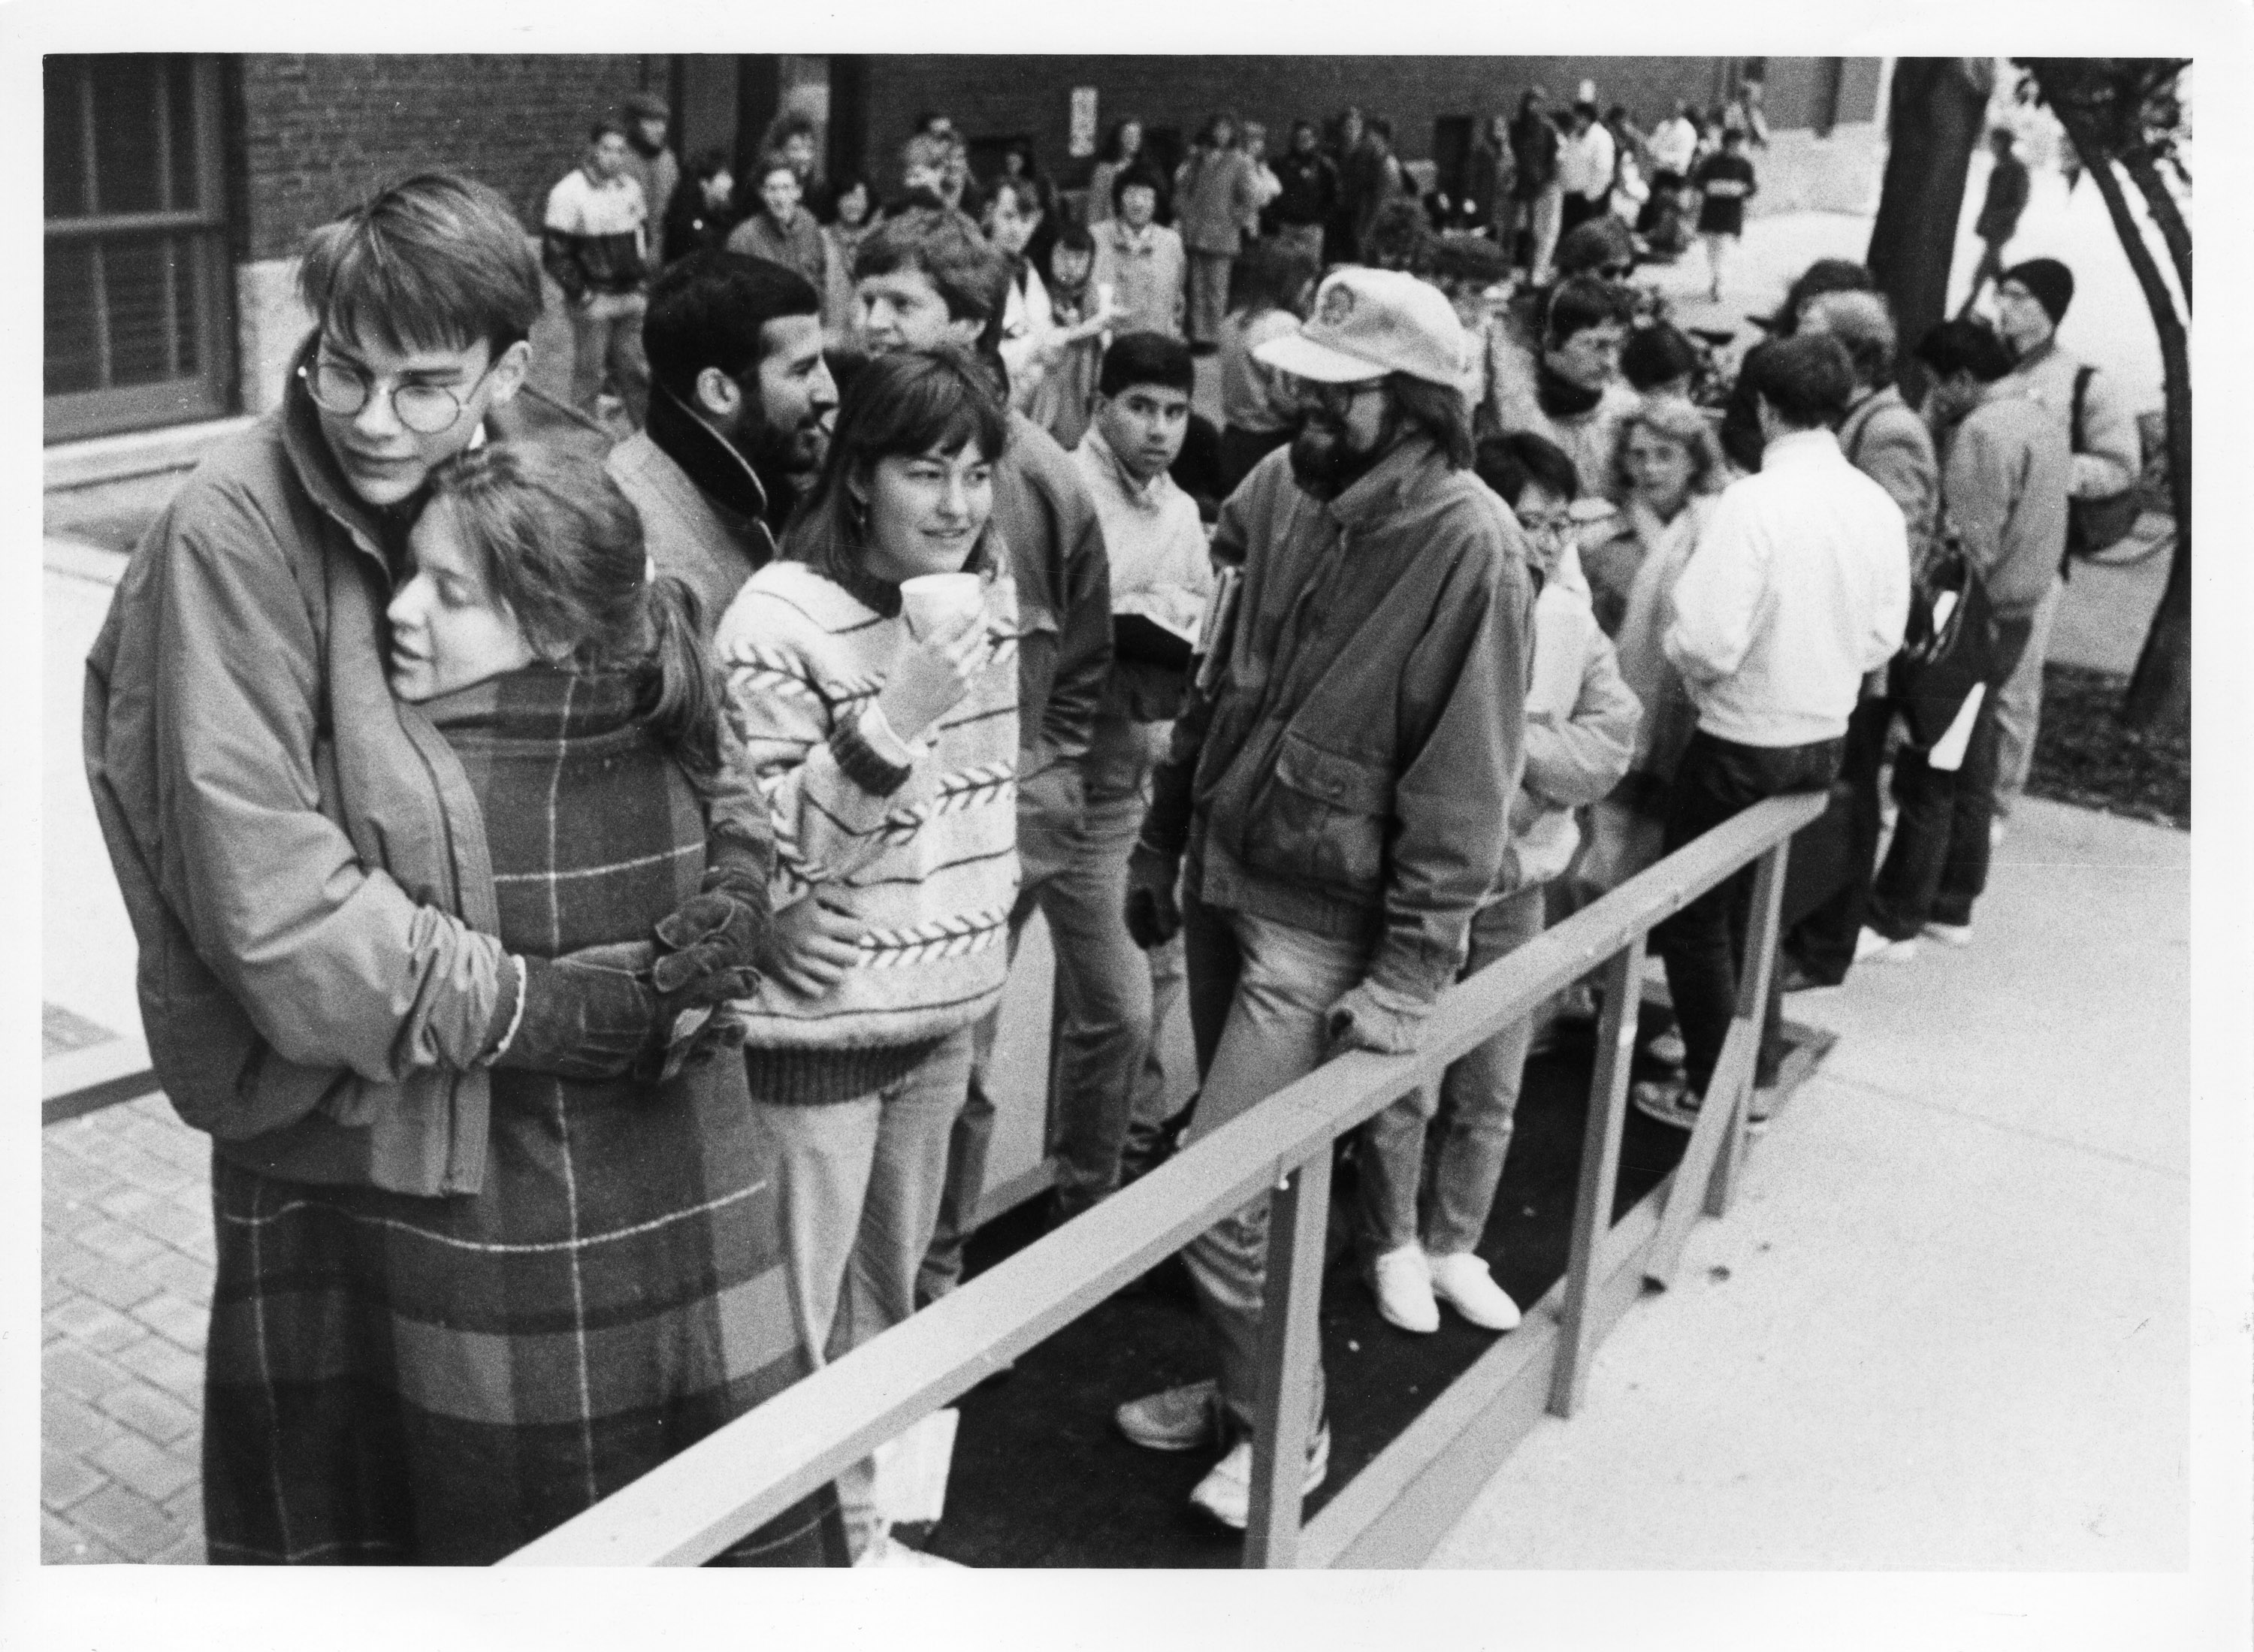 Students waiting to purchase tickets to Bernstein Benefit Concert, October 10, 1988 image